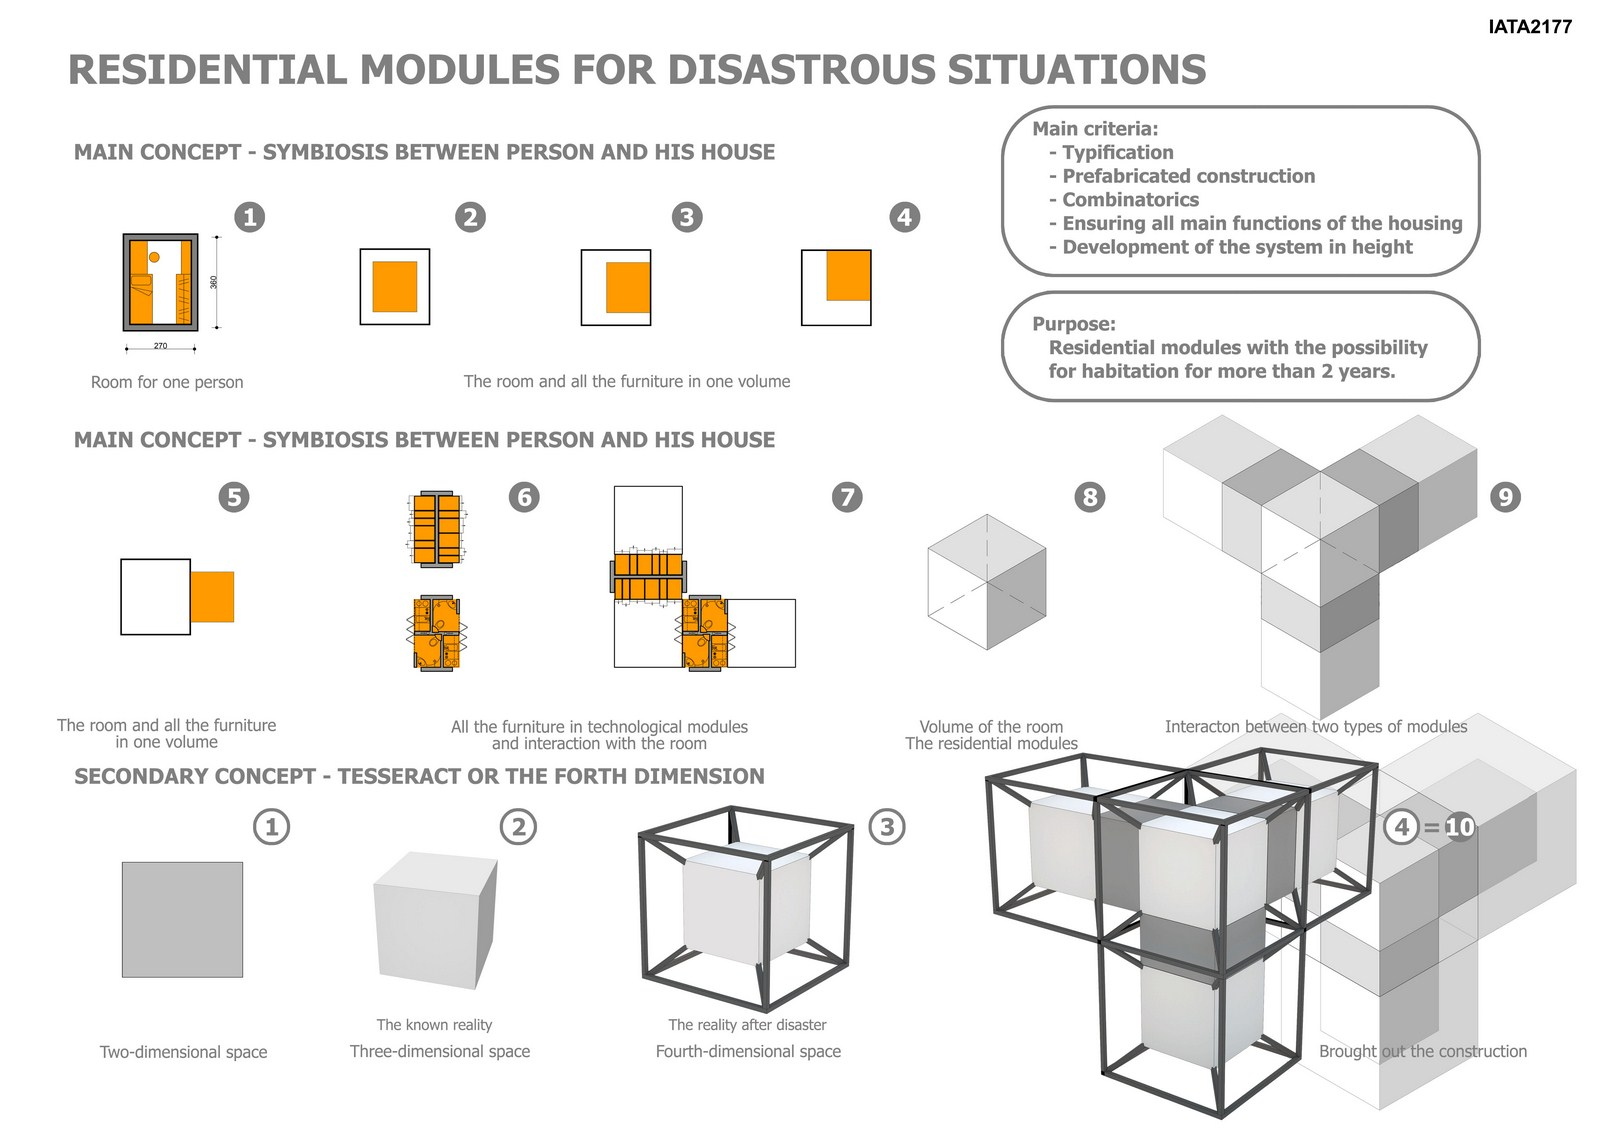 Residentioa Modules For Disastrous Situations by Veselina Mireva - Sheet1